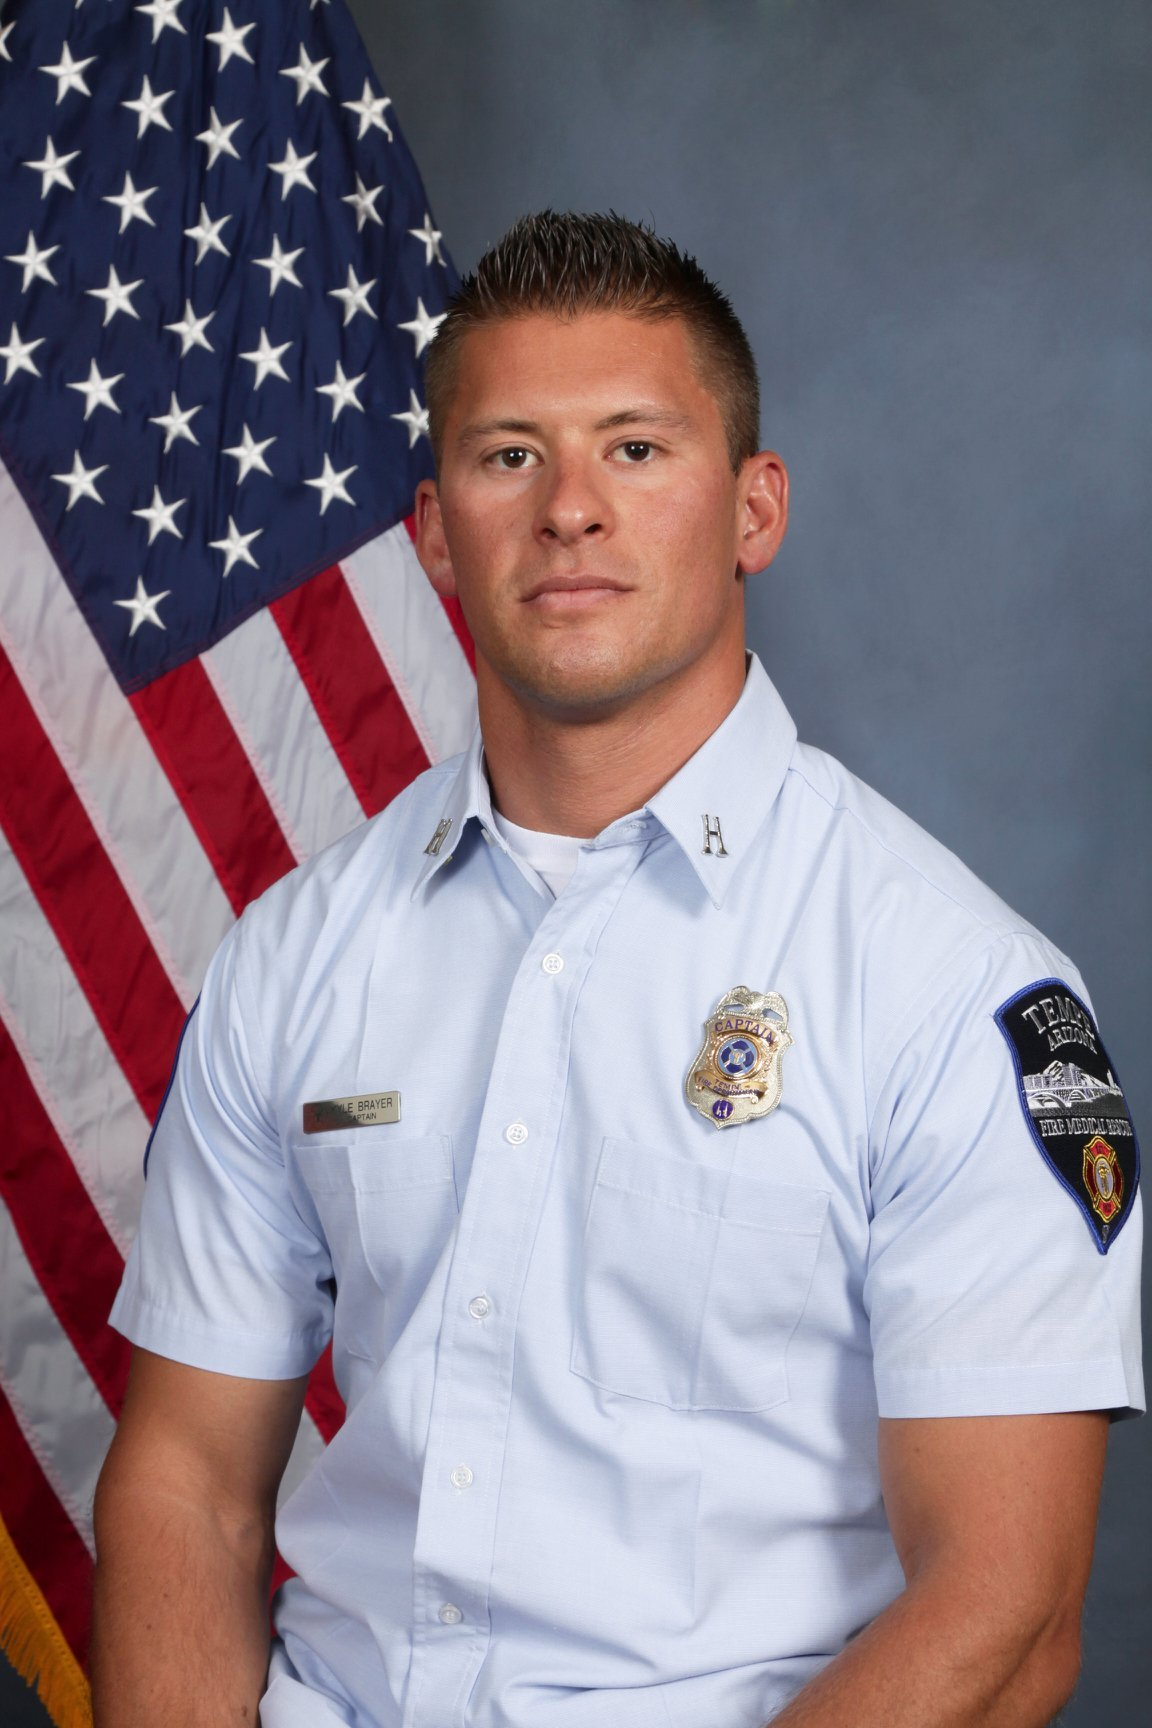 Kyle Brayer, 34 (Source: Tempe Fire Medical Rescue Department)